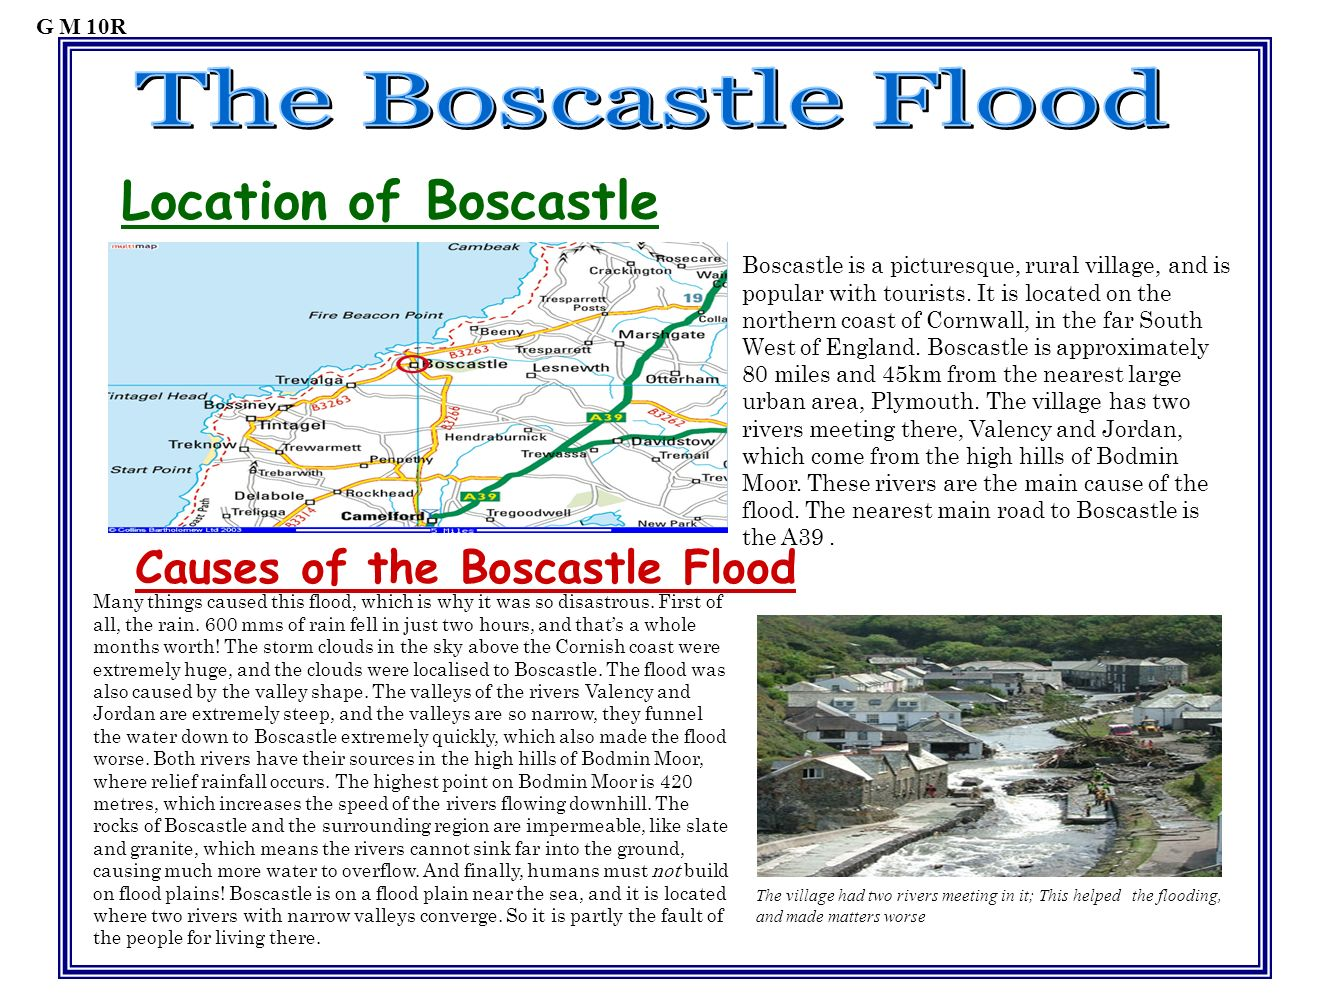 Location of Boscastle Boscastle is a picturesque, rural village, and is popular with tourists. It is located on the northern coast of Cornwall, in the